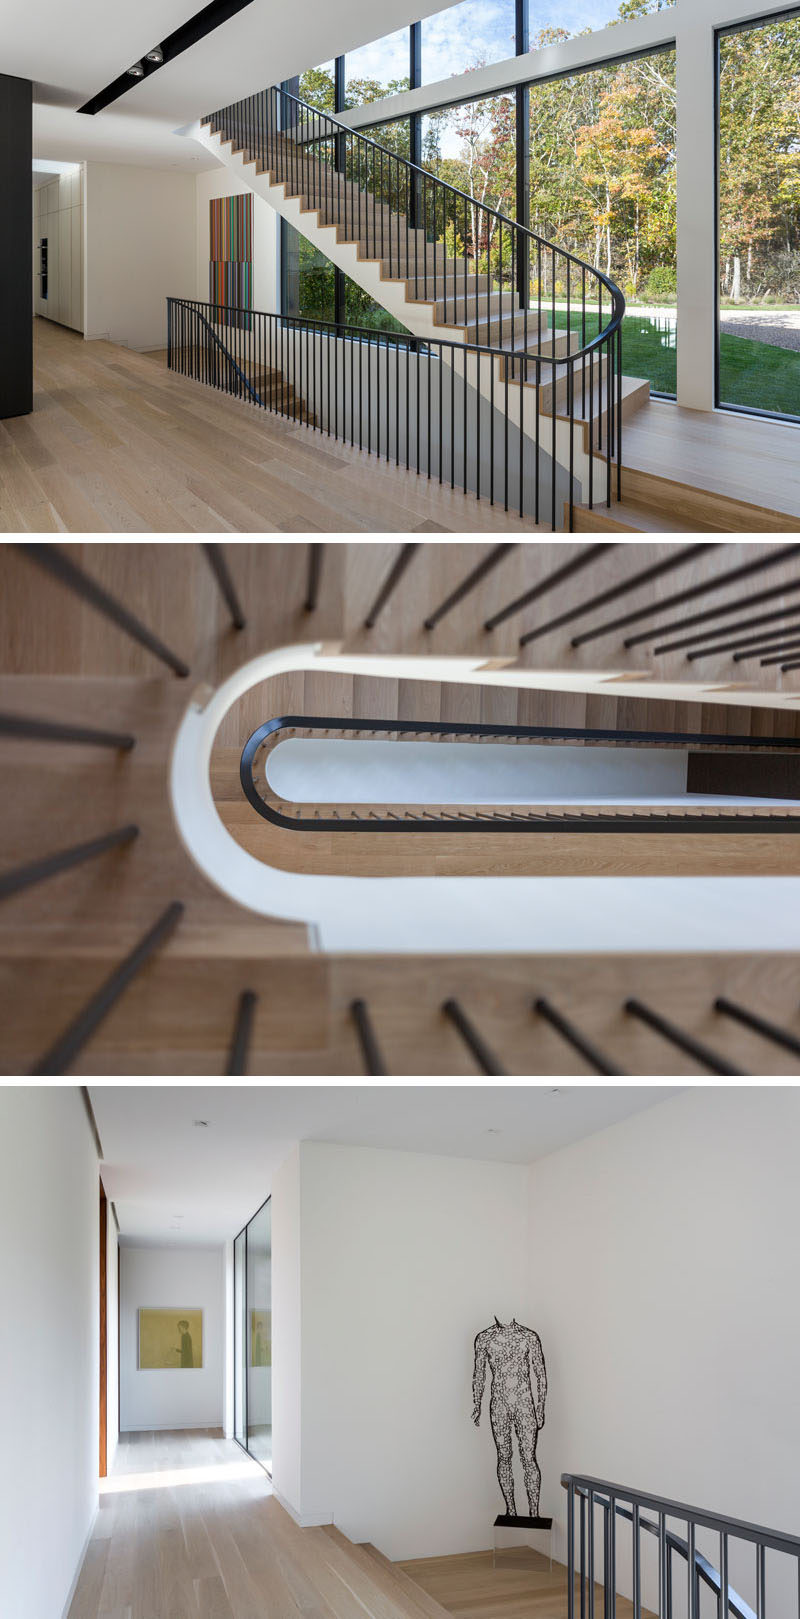 This modern house features stairs with wood treads and a black railing. #Stairs #StairDesign